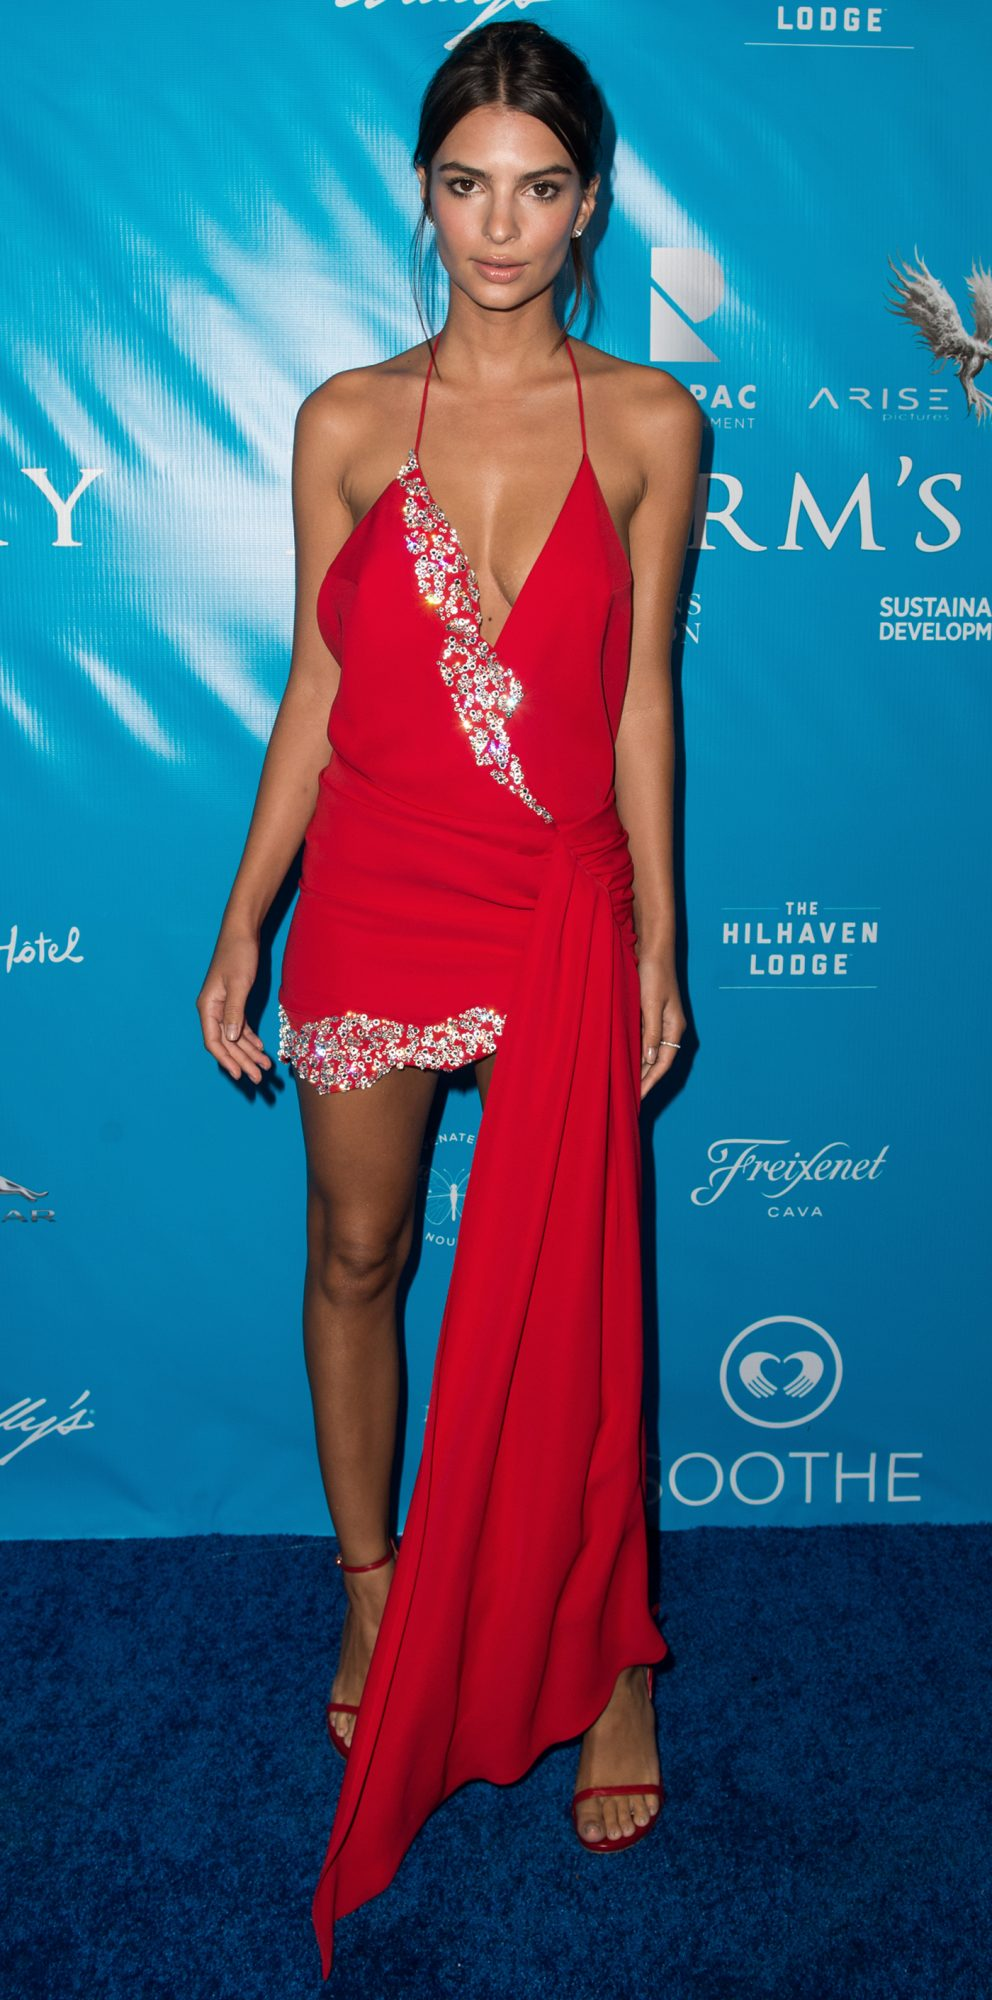 Emily Ratajkowski's Fiery Red Dress Looks Even Sexier from the Back